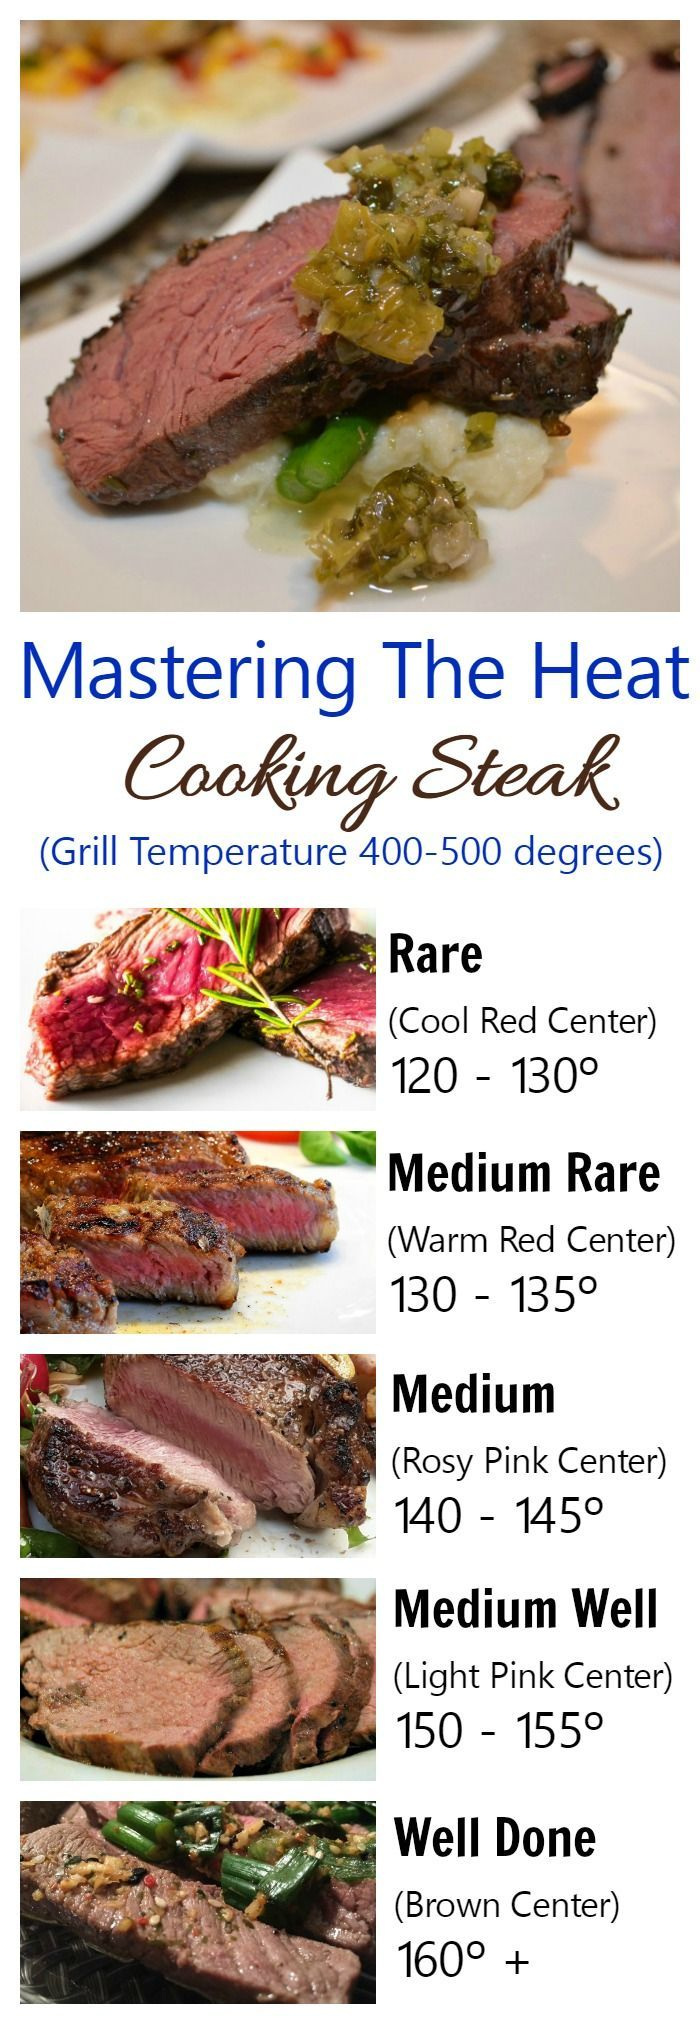 Steak Doneness is judged by the color, internal temperature, and juiciness of the meat. Do you know how to cook your steak to the prefect degree of doneness?